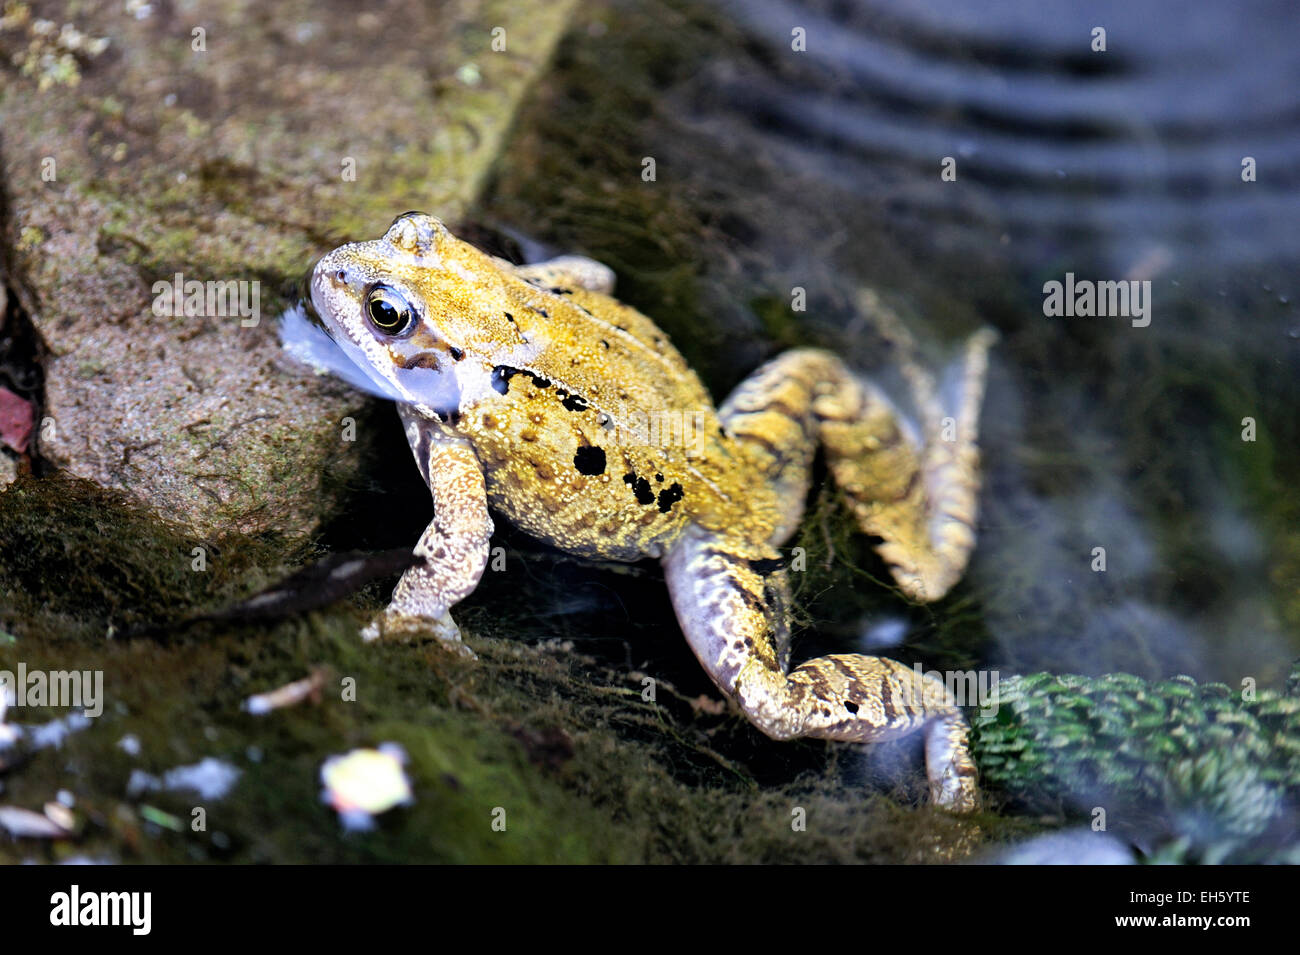 Common frog Rana temporaria in uk garden pond - Stock Image